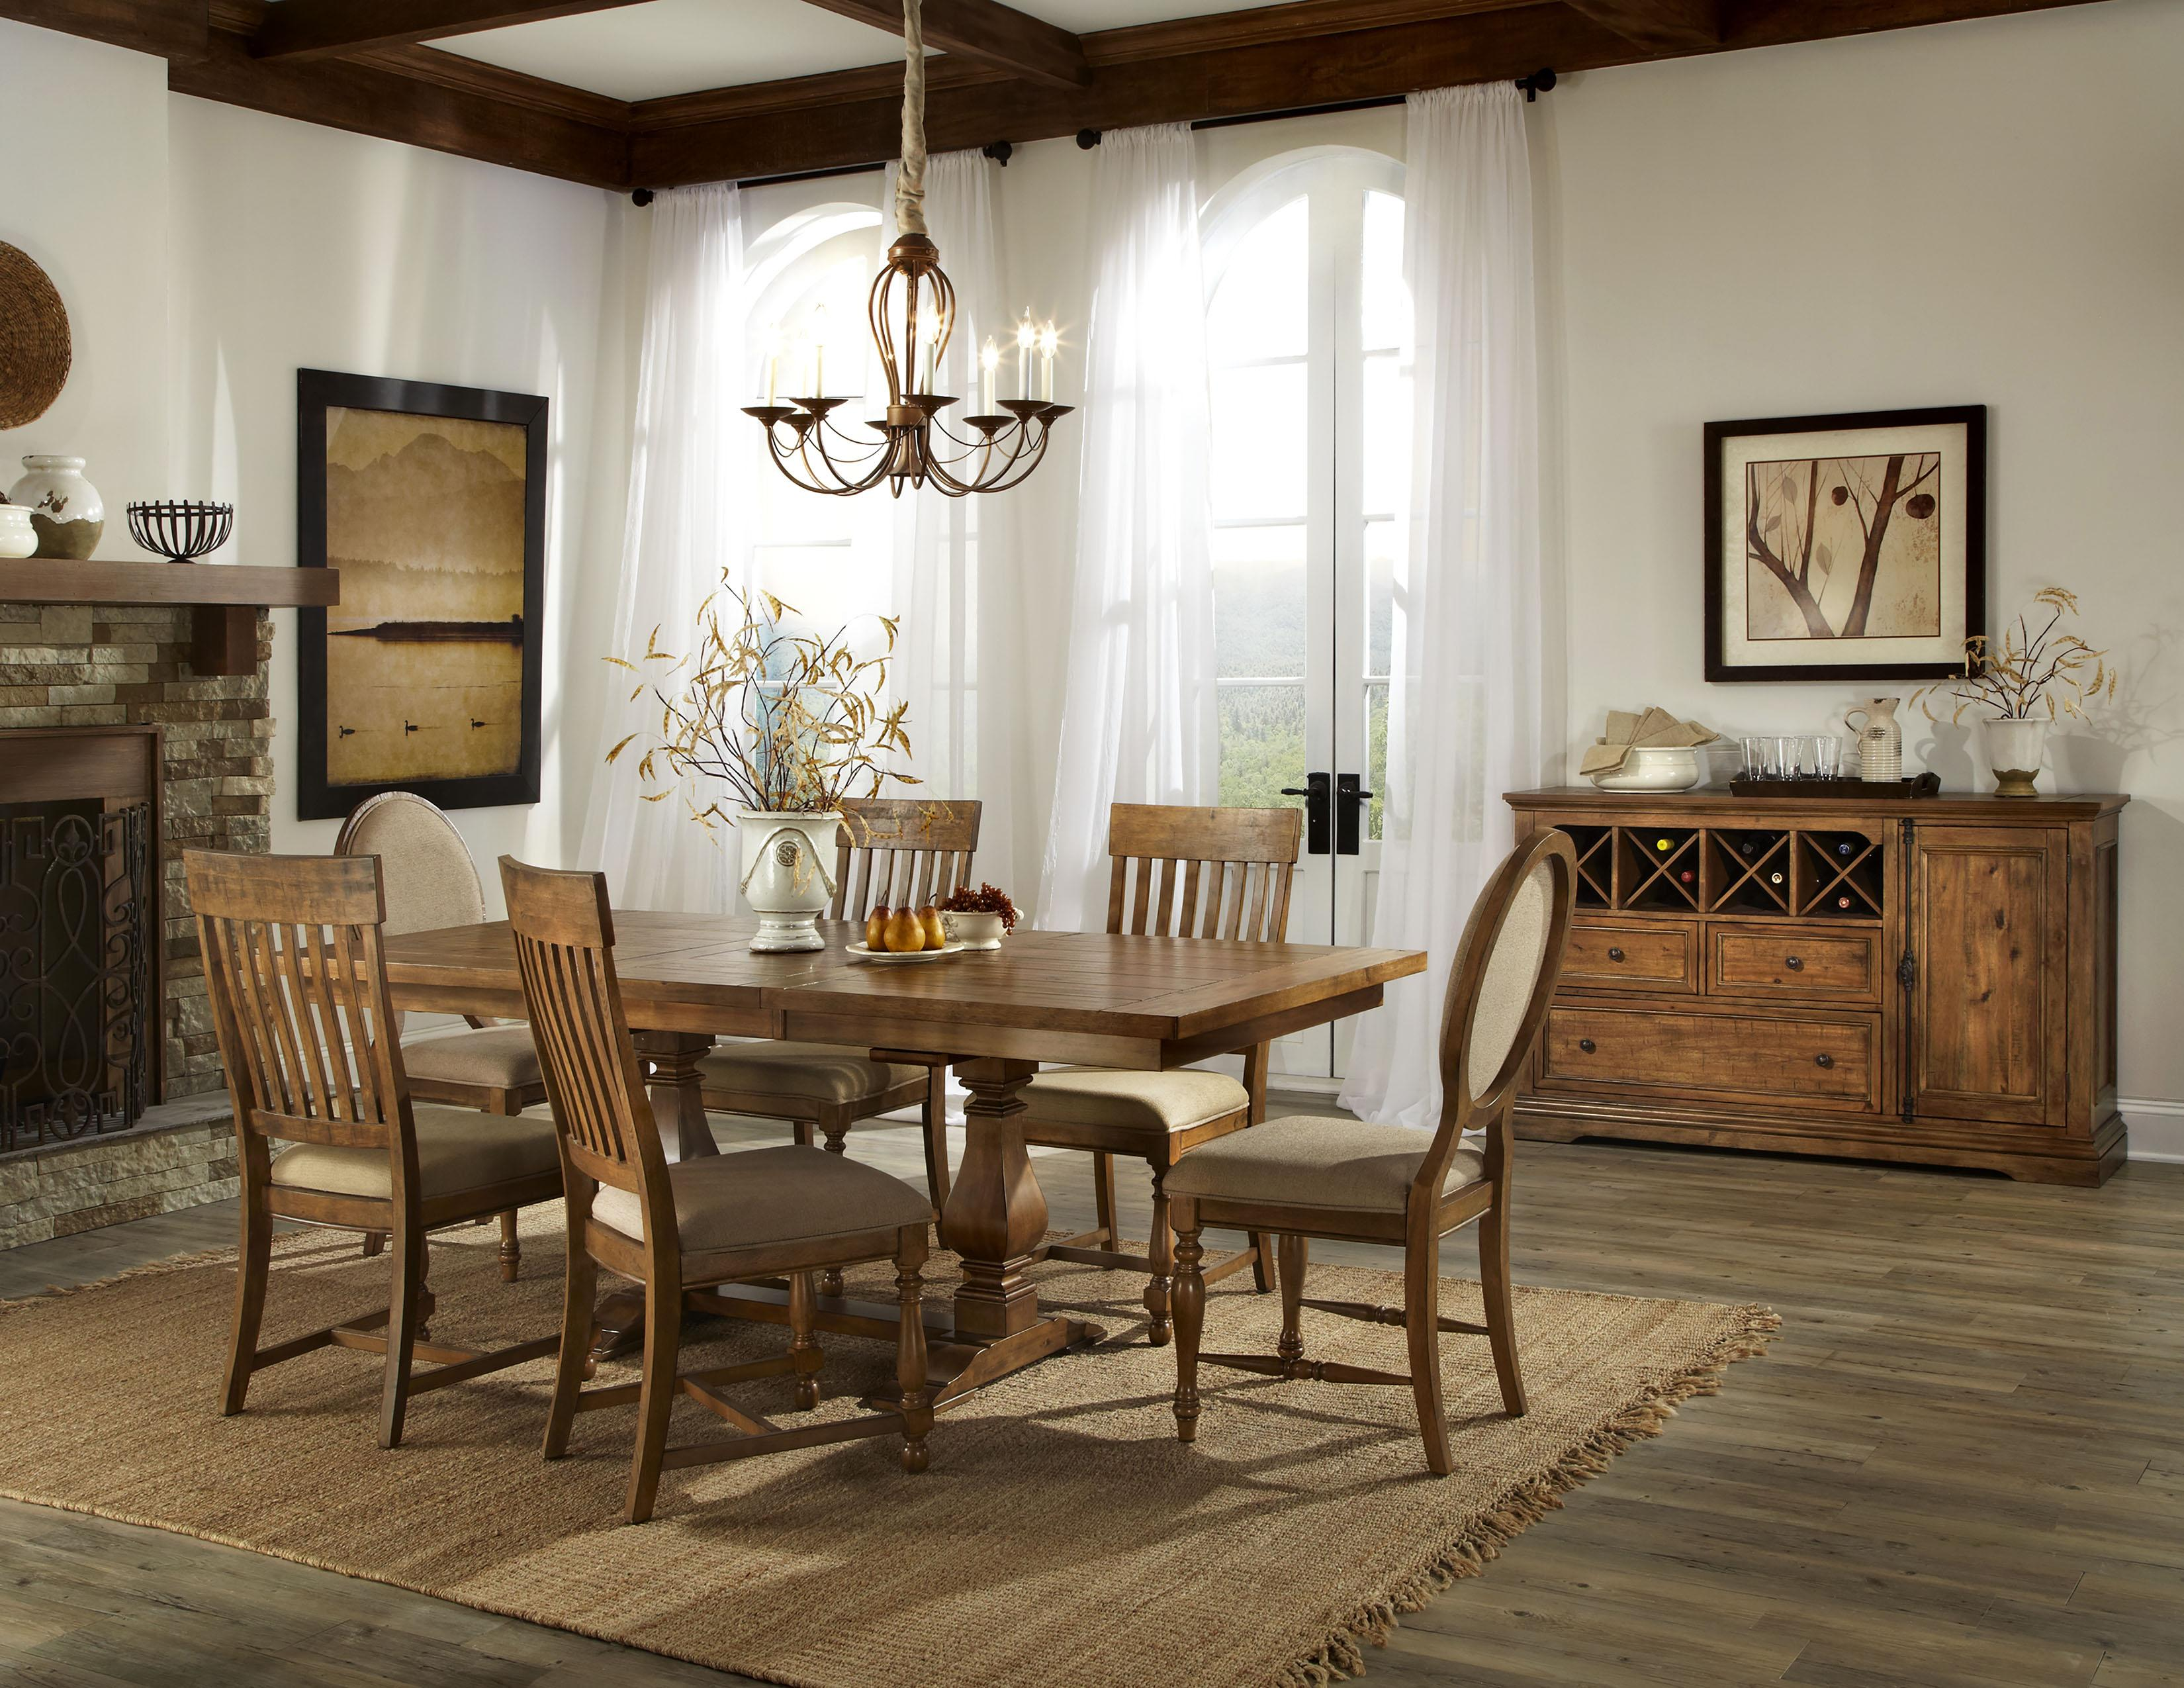 Intercon Rhone Trestle Dining Table with Leaf | Wayside Furniture ...